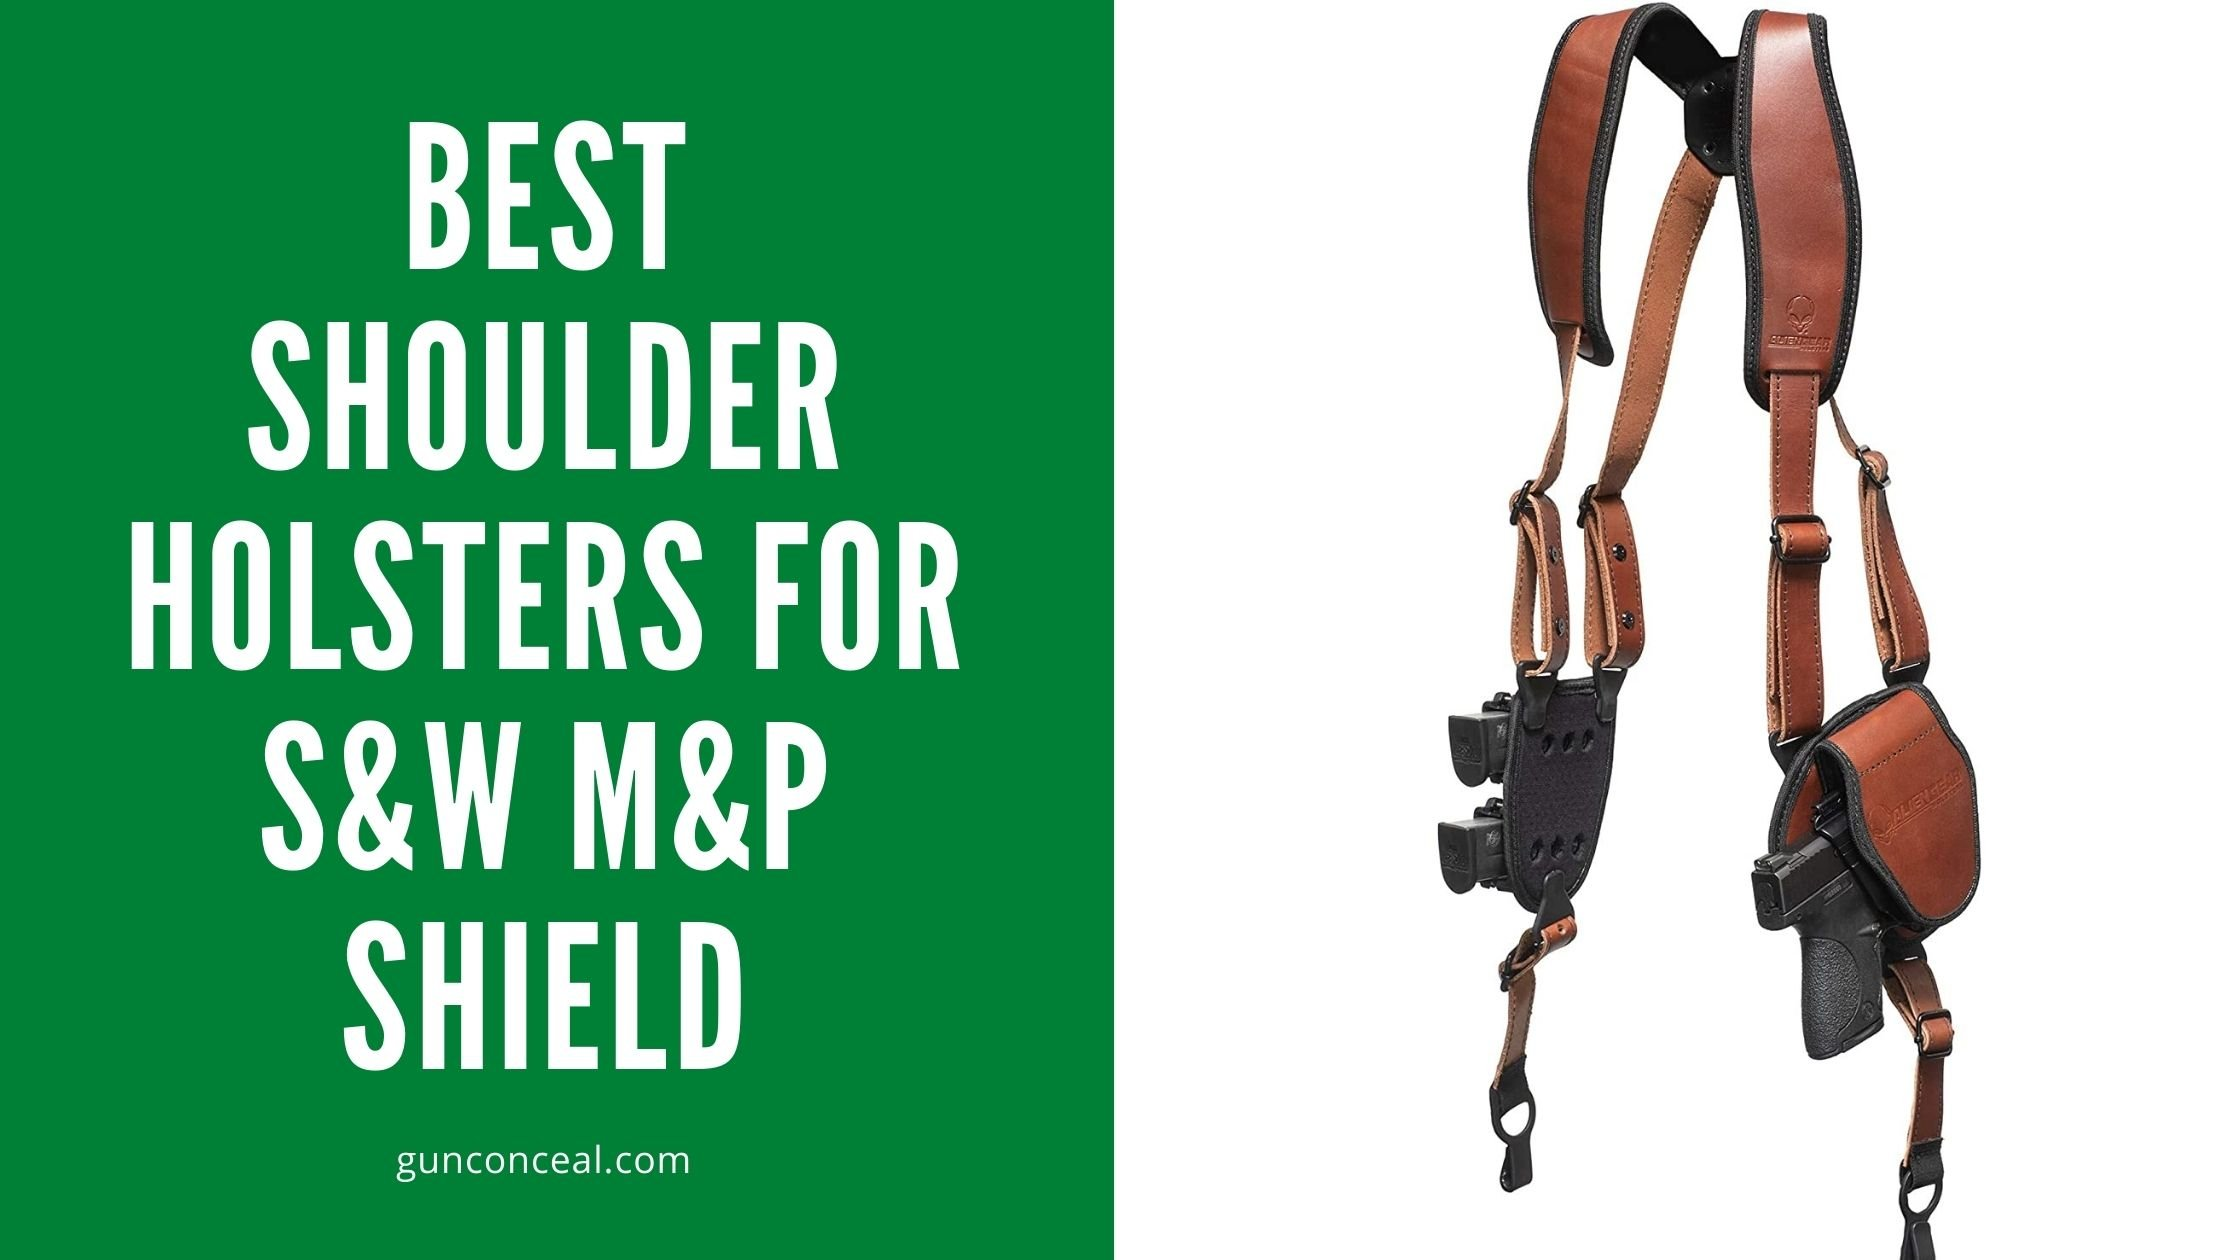 Best Shoulder Holsters for S&W M&P Shield